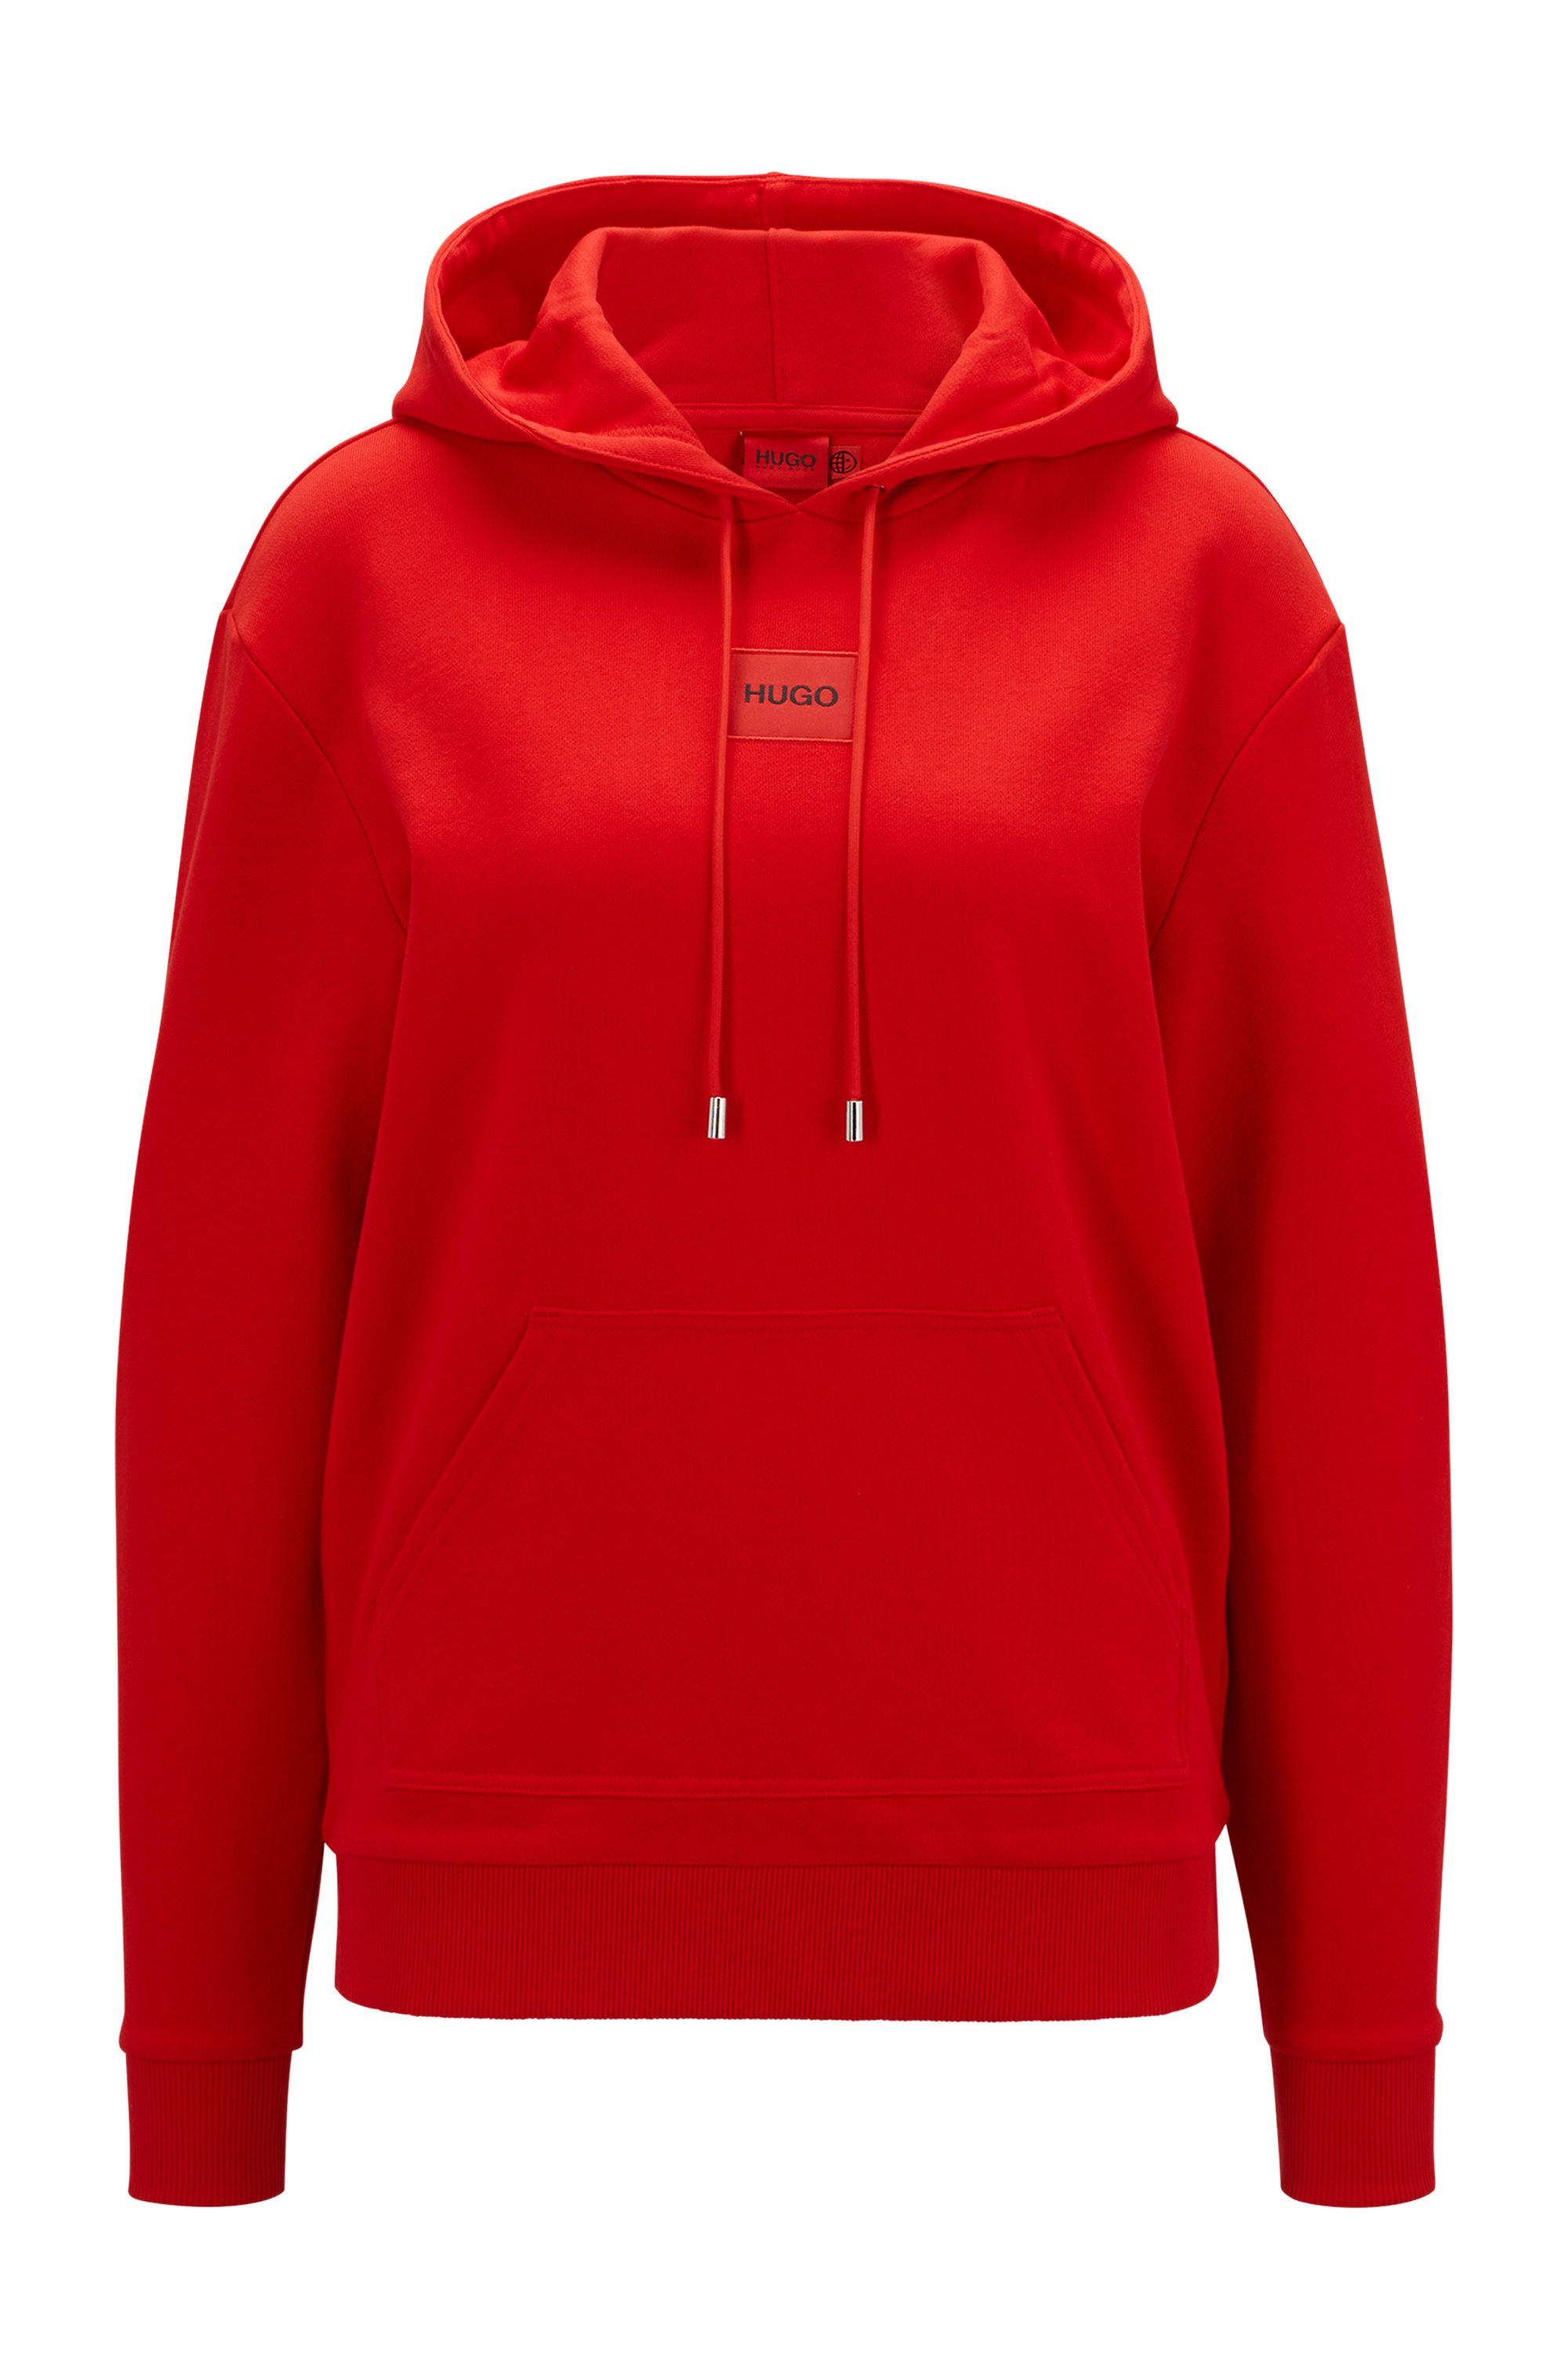 Cotton hooded sweatshirt with red logo label, light pink